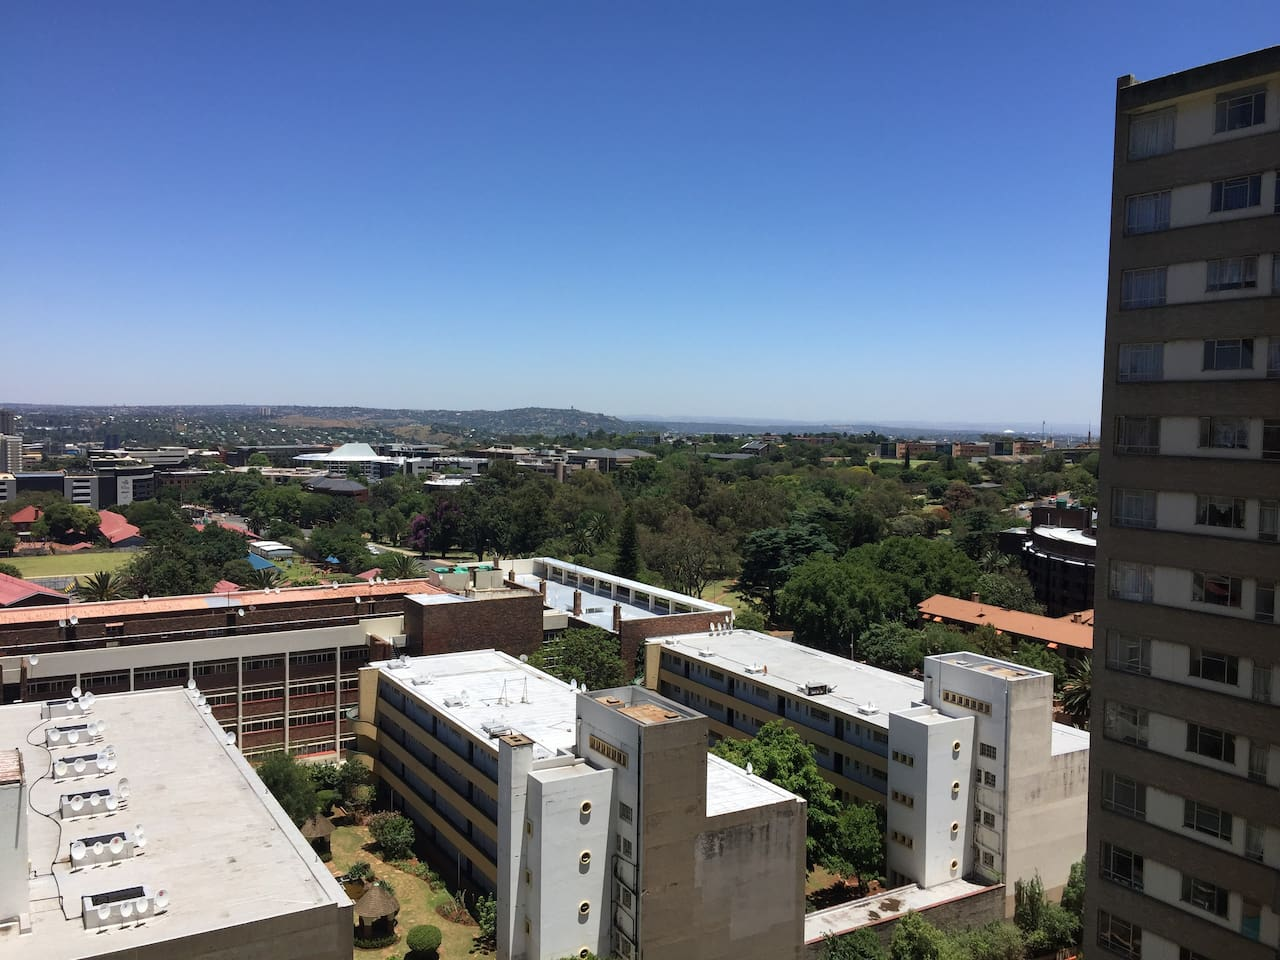 One of the best views in Joburg, off the balcony